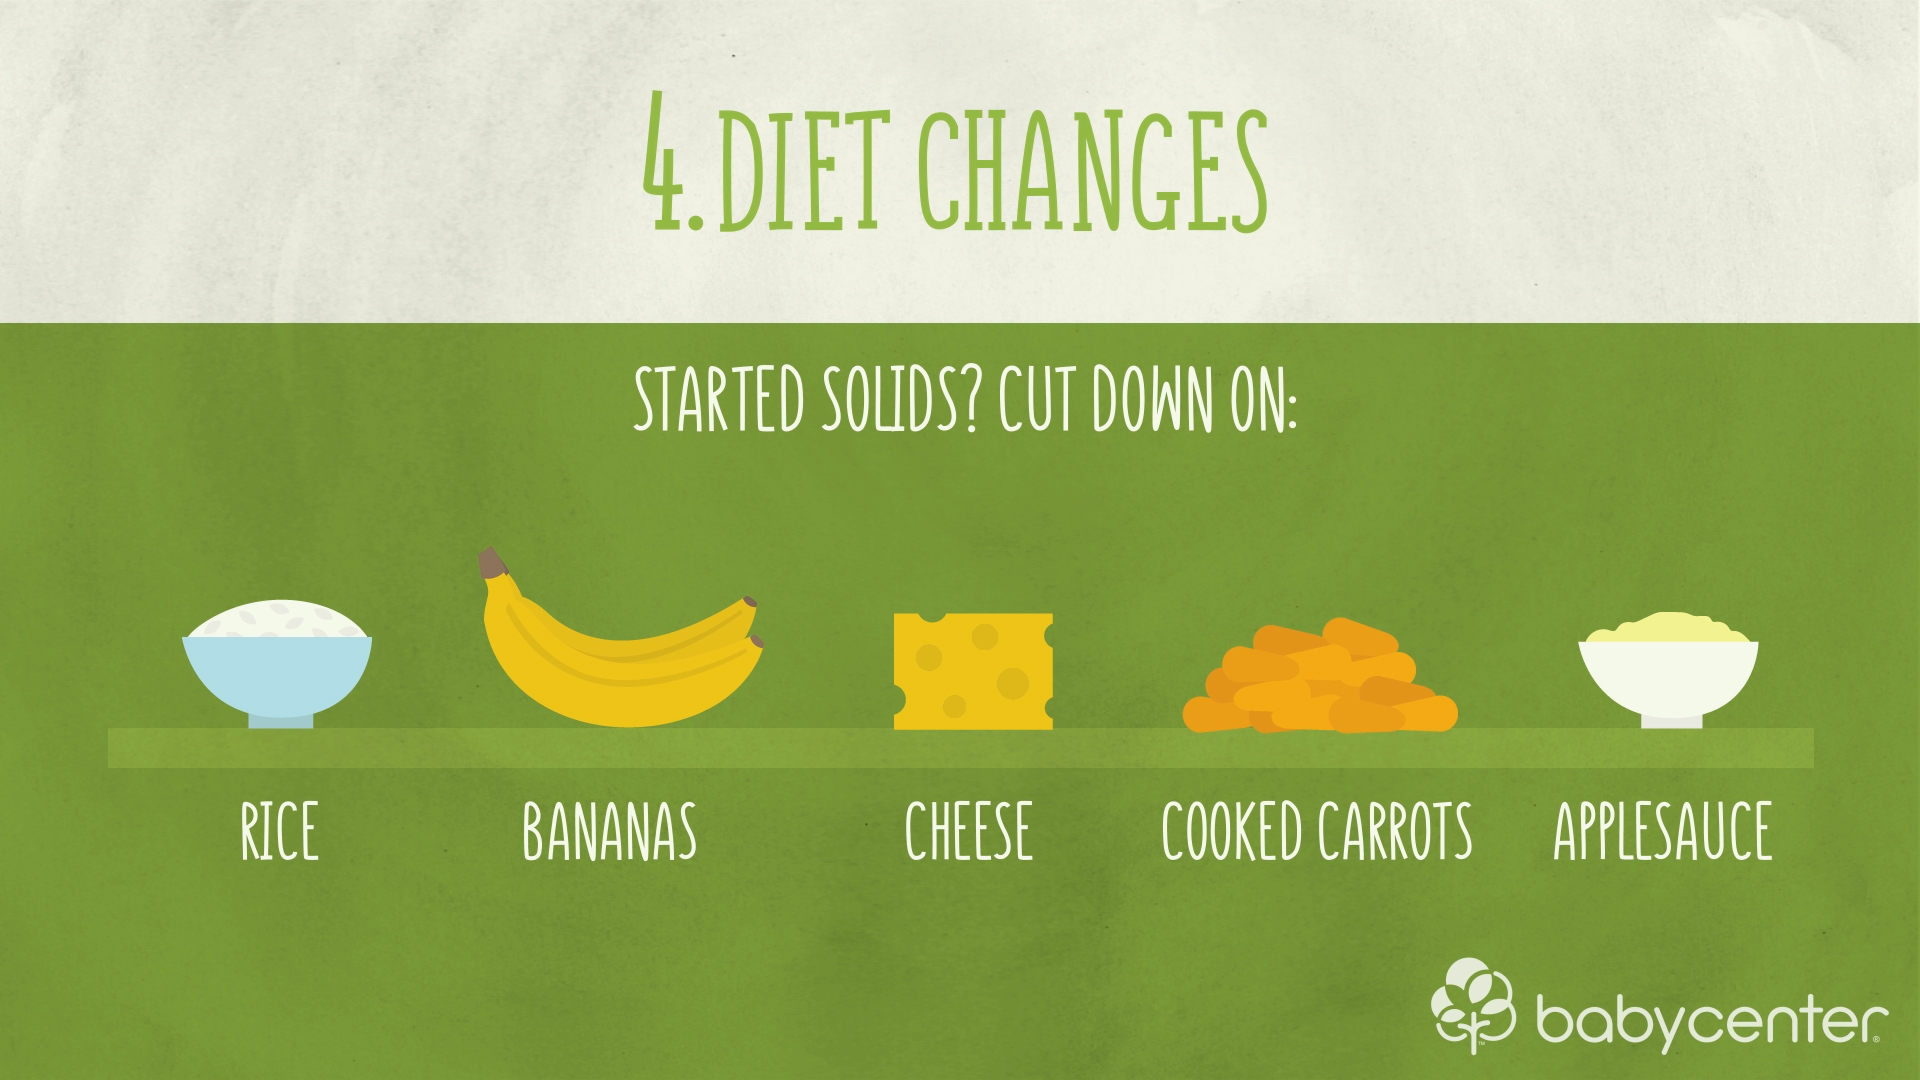 babycenter-baby-constipation-animation-diet-changes.jpg